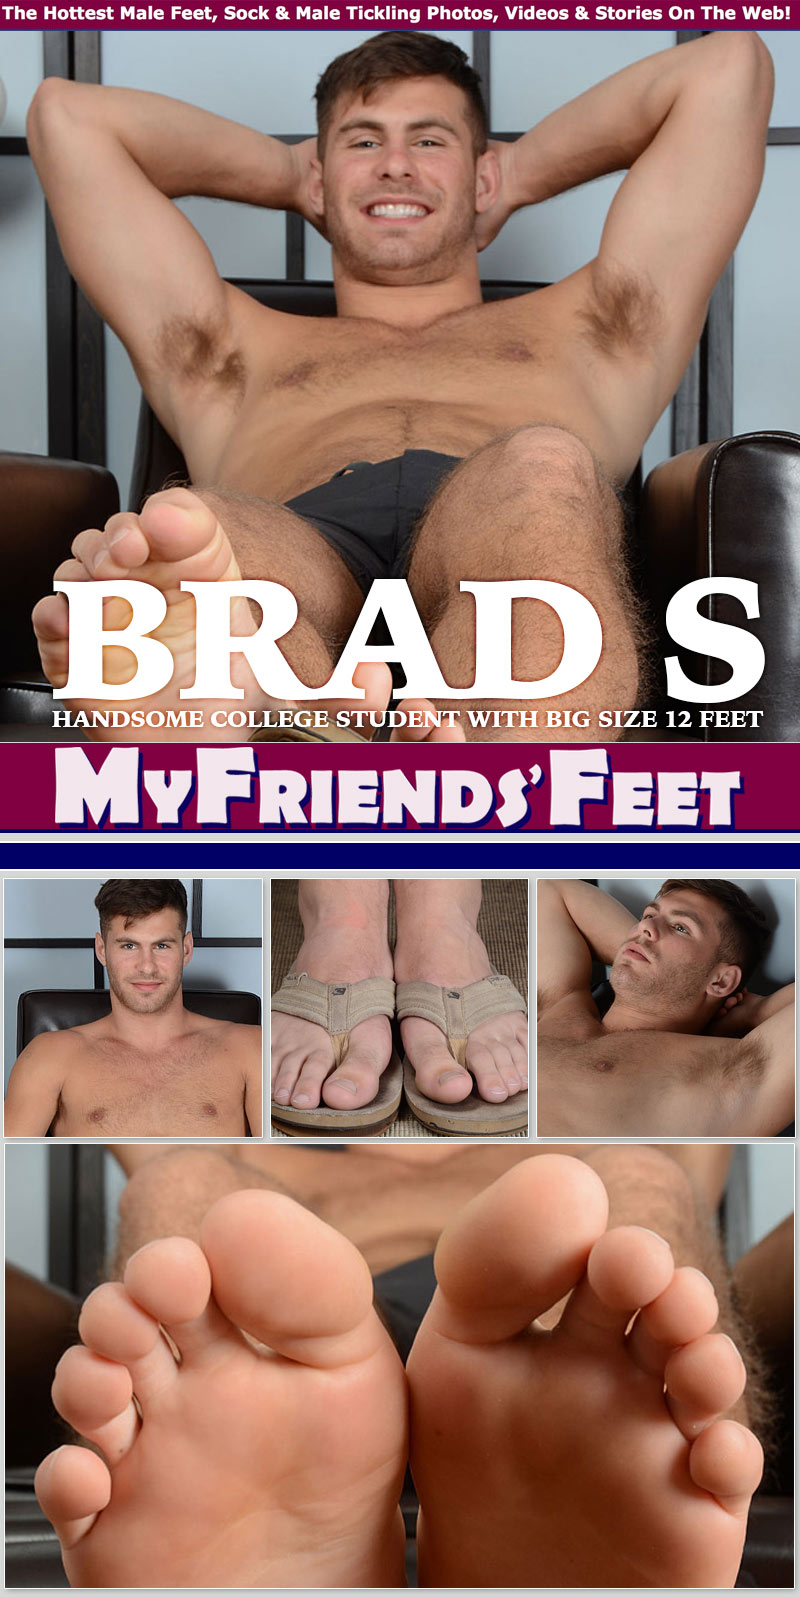 Brad S (Size 12) at My Friends' Feet